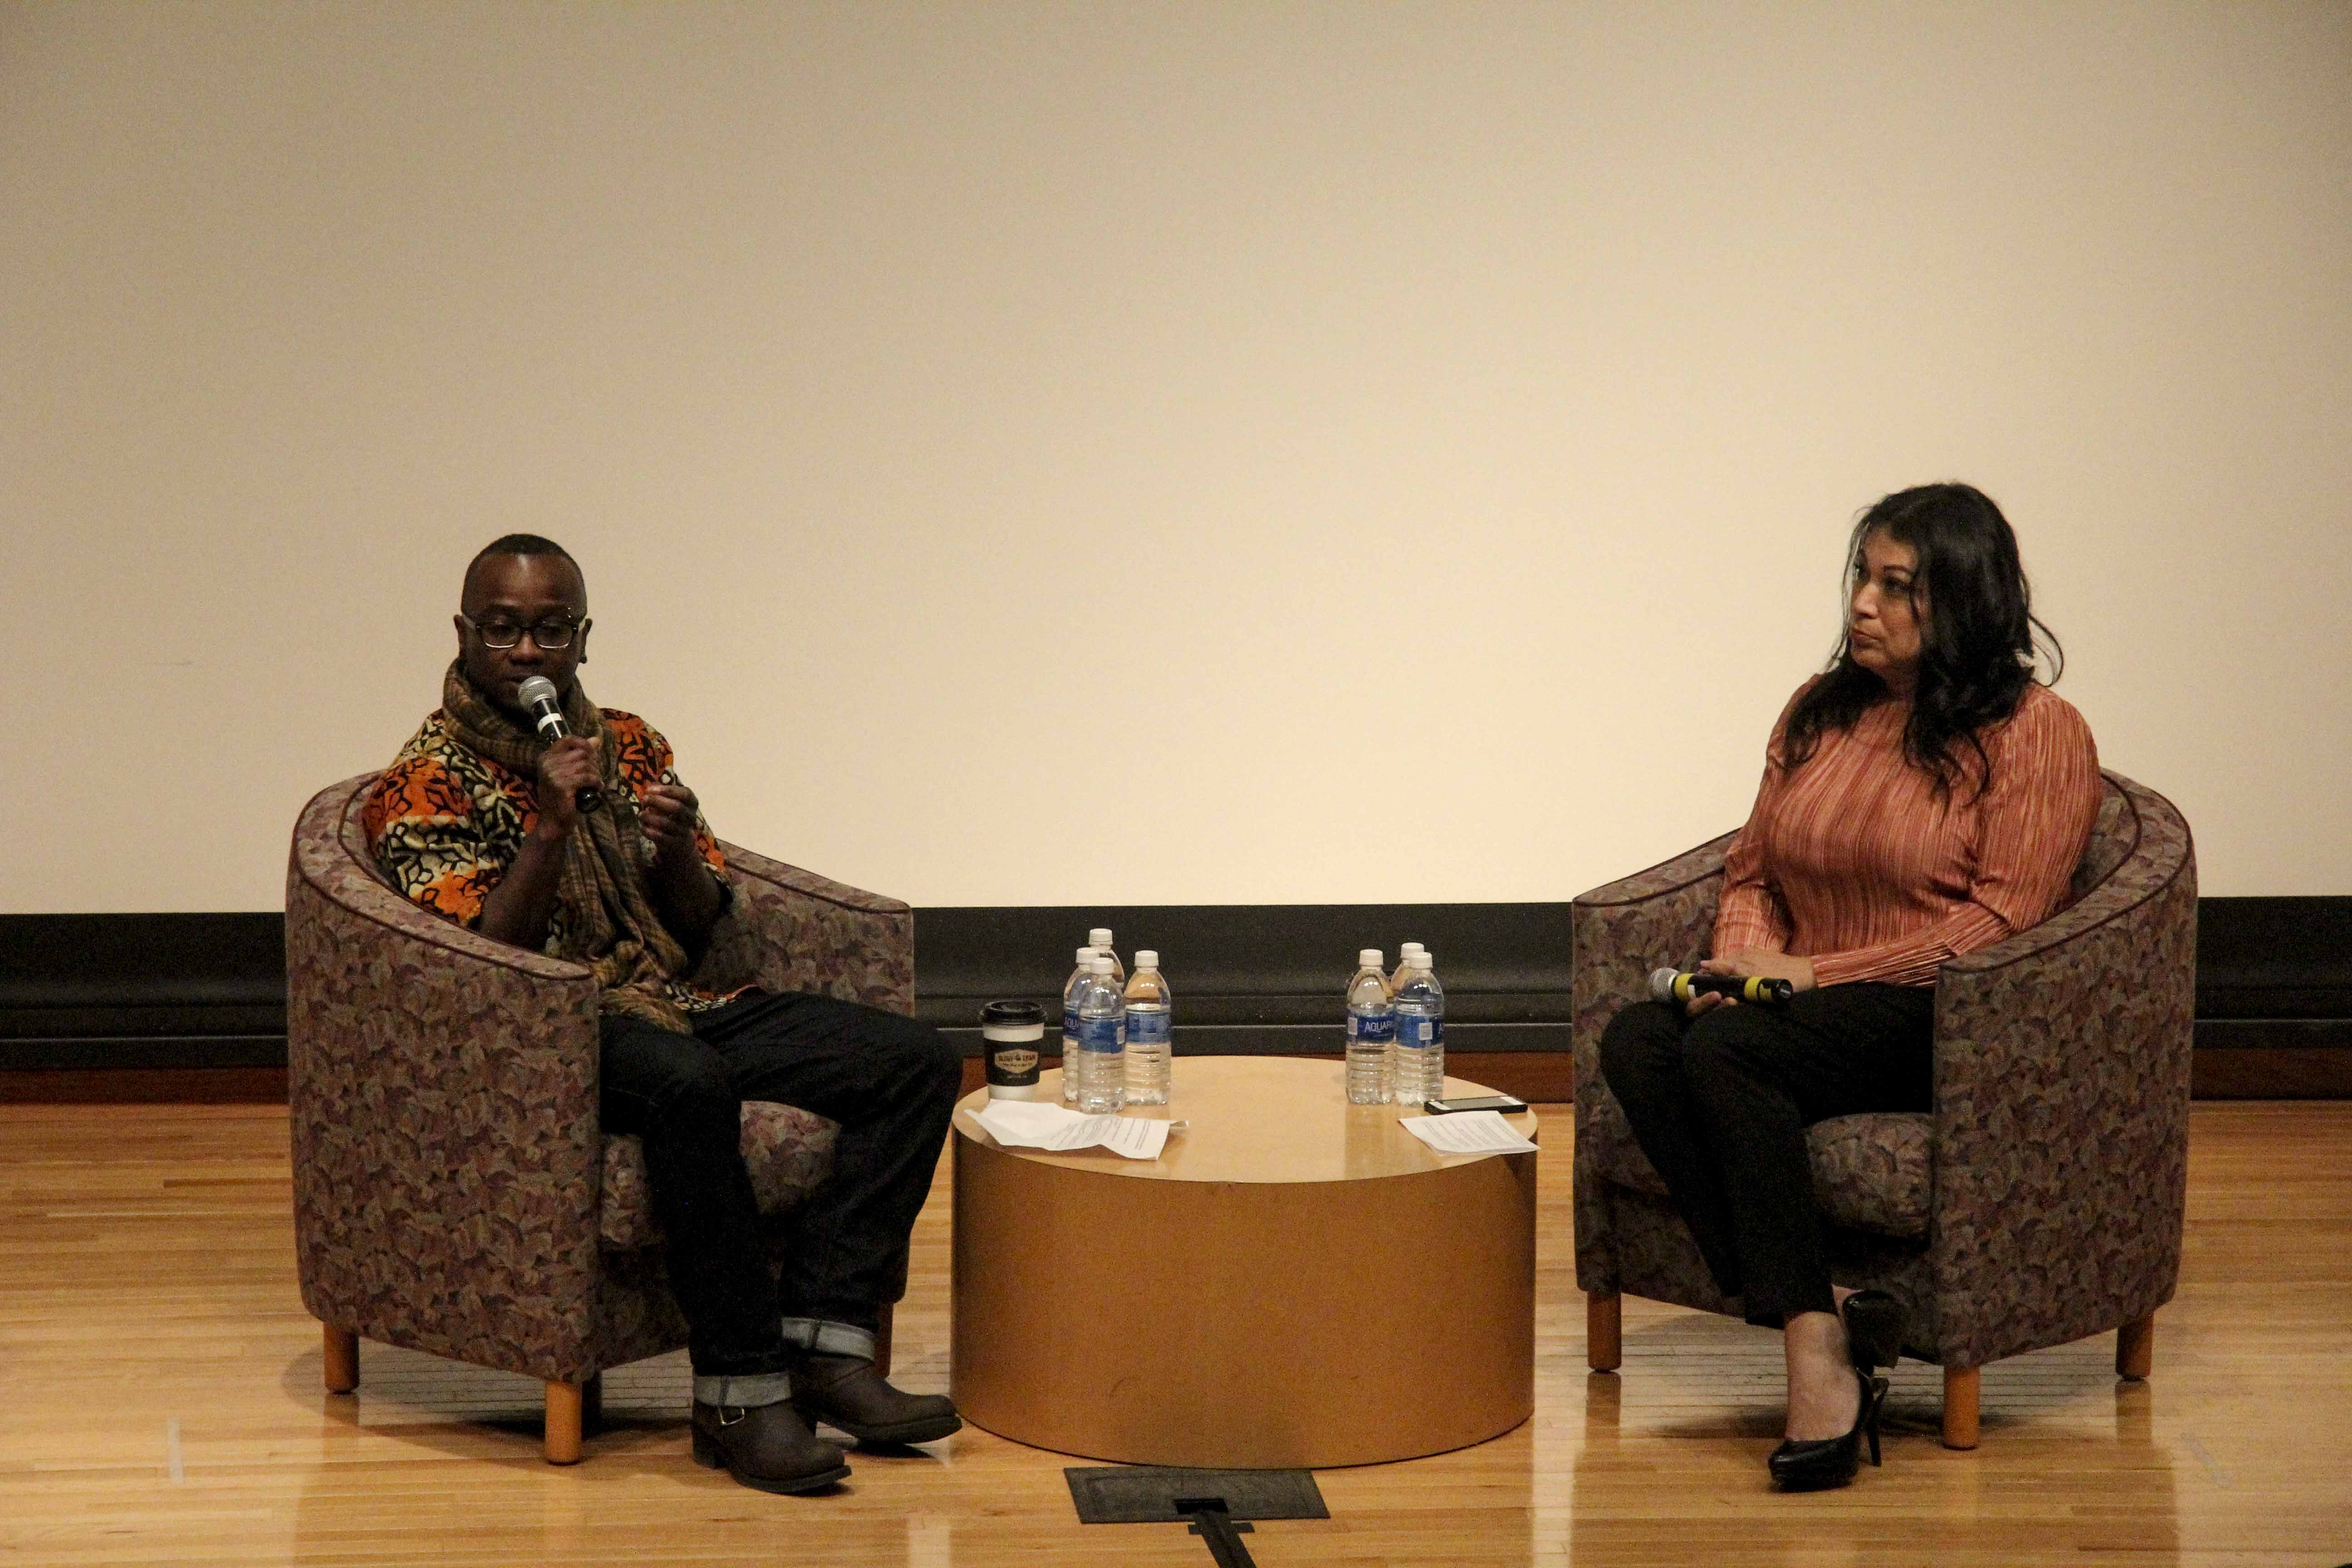 Undocumented trans activists Ola Osaze (left), Nigerian-born, and Jennicet Gutiérrez, who came to the U.S. from Mexico in her teens, interview one another in front of an audience at My Name is My Own, an event hosted by the Multicultural Resource Center in Dye Lecture Hall Thursday night. My Name is My Own's primary mission is to provide institutional support to Oberlin communities that identify as queer and of color in the broadest senses of those words. Discussion topics ranged from political promises by current and past administrations in the face of increasing violence against Black, brown, trans and immigrant bodies to the importance of self love and joy in social and political climates that provide little of either to minority communities across the board.